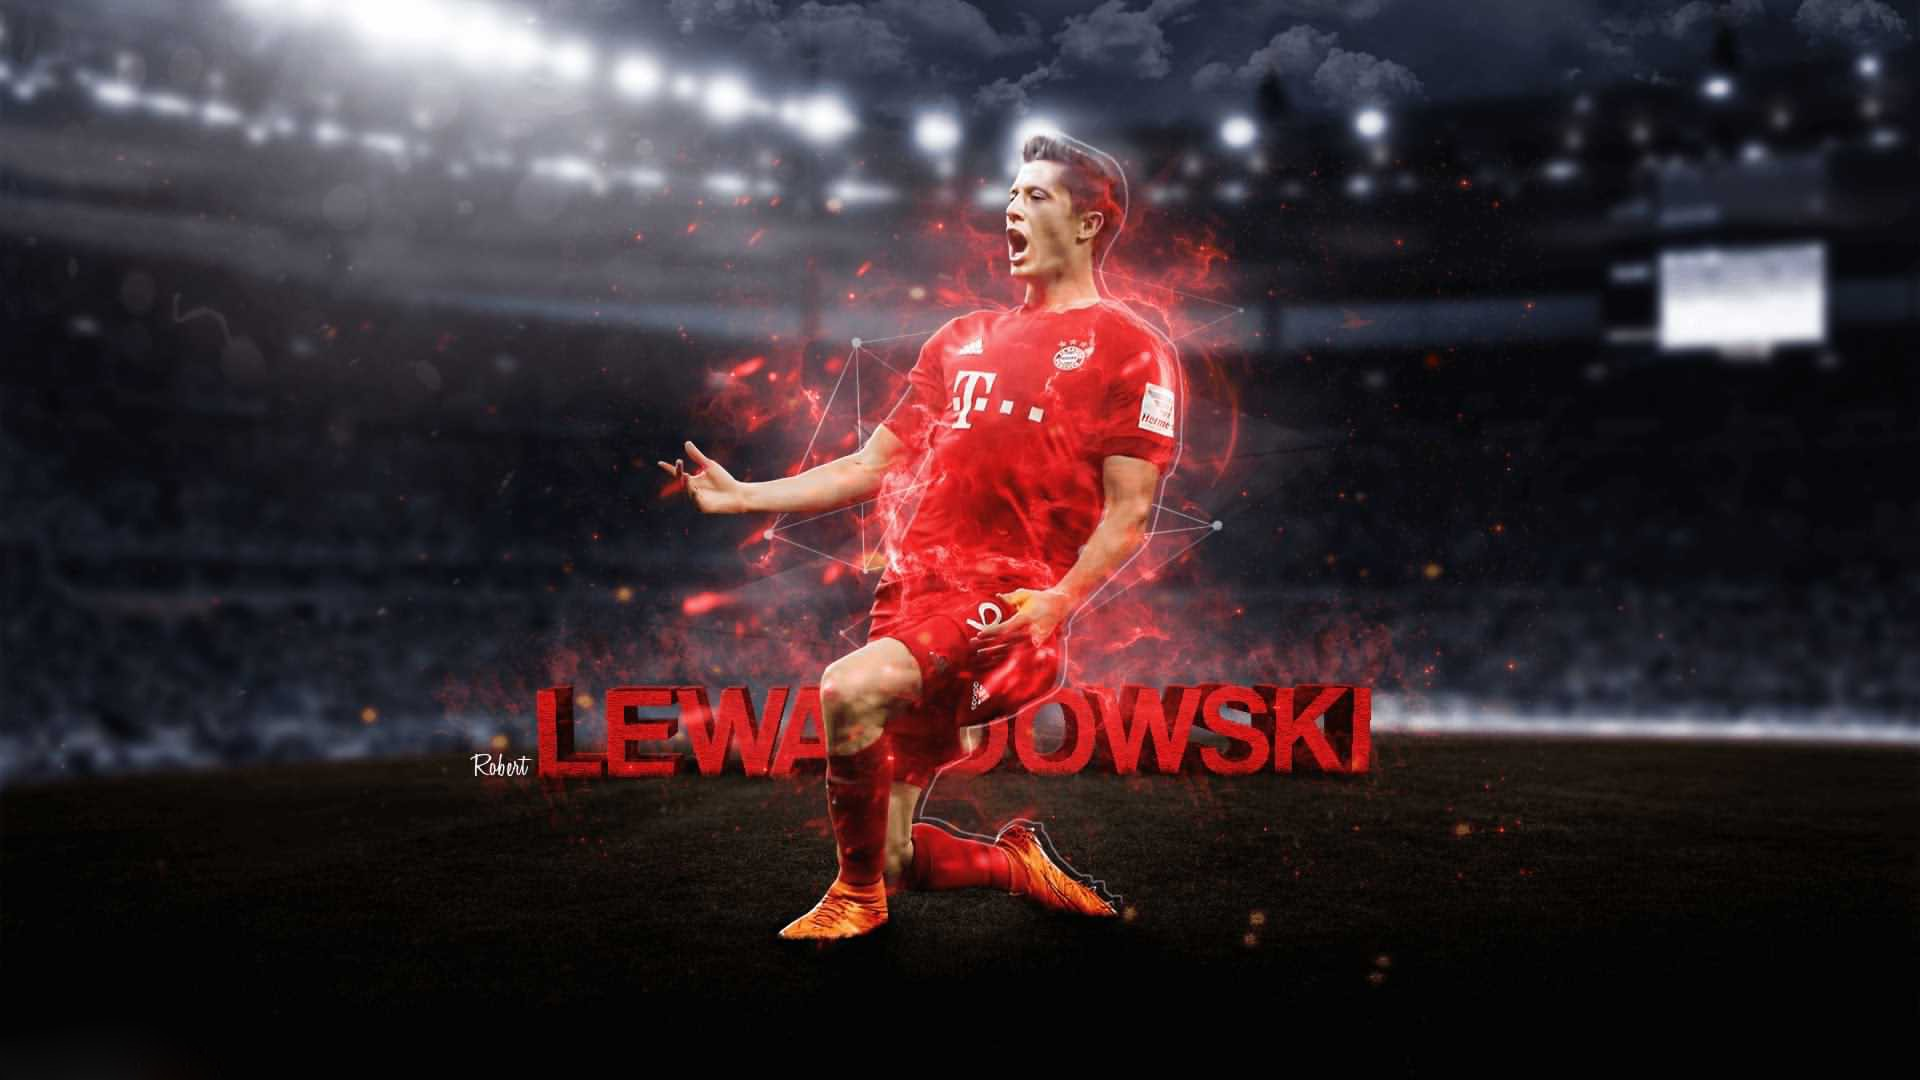 Robert Lewandowski Wallpapers High Resolution And Quality